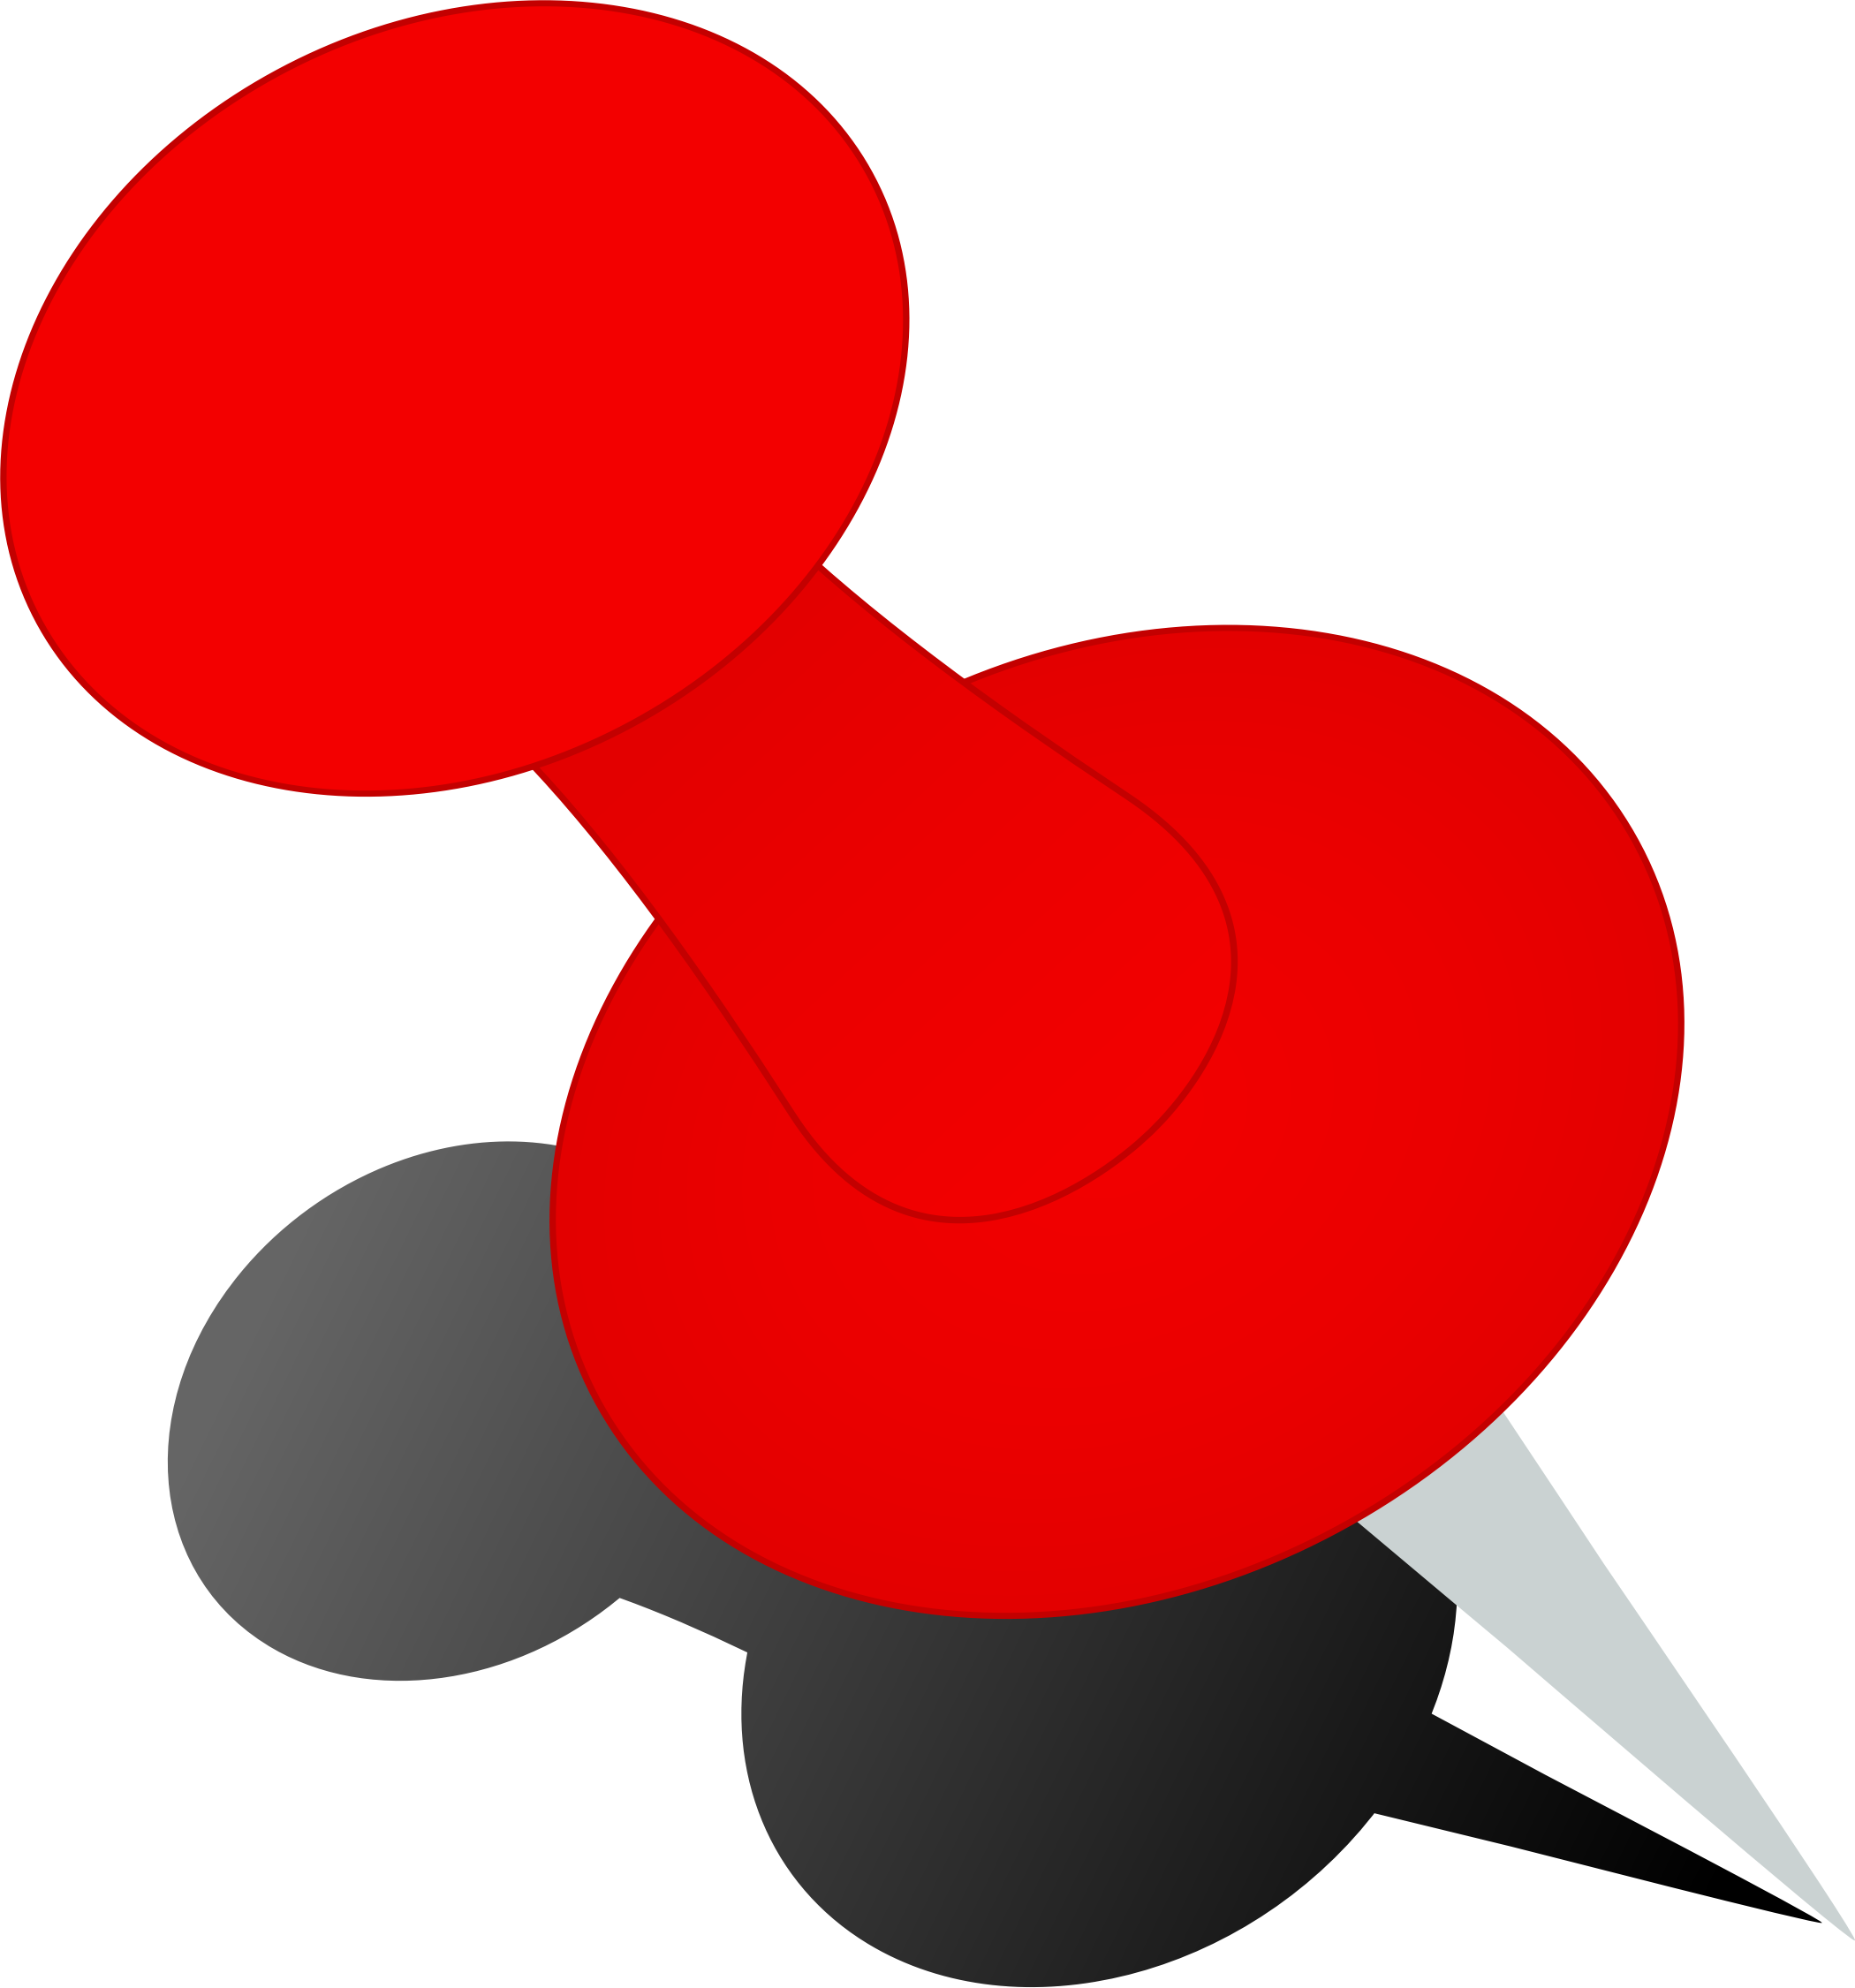 Pushpin vector red pin. Push icons png free